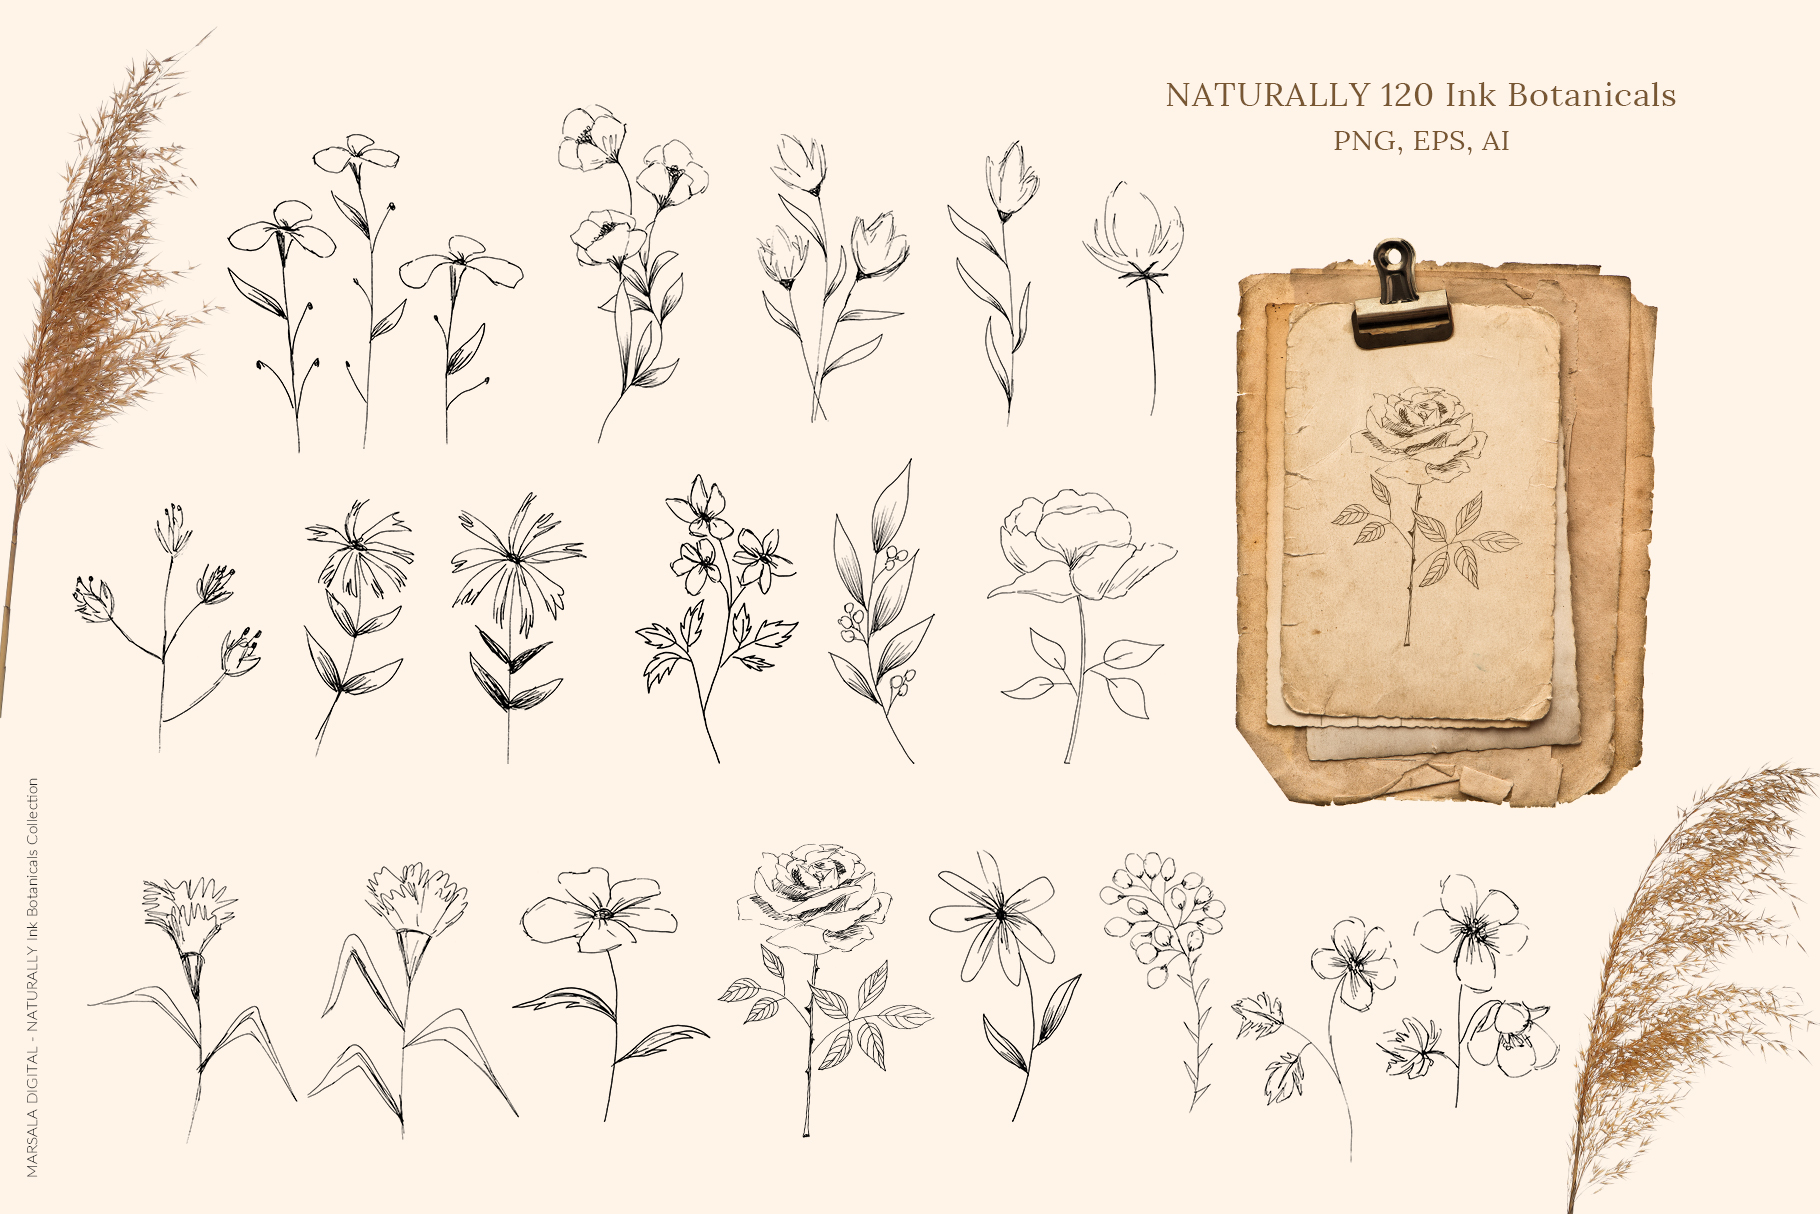 Ink Botanicals Vintage Wildflowers Ink Botanicals Vintage example image 10